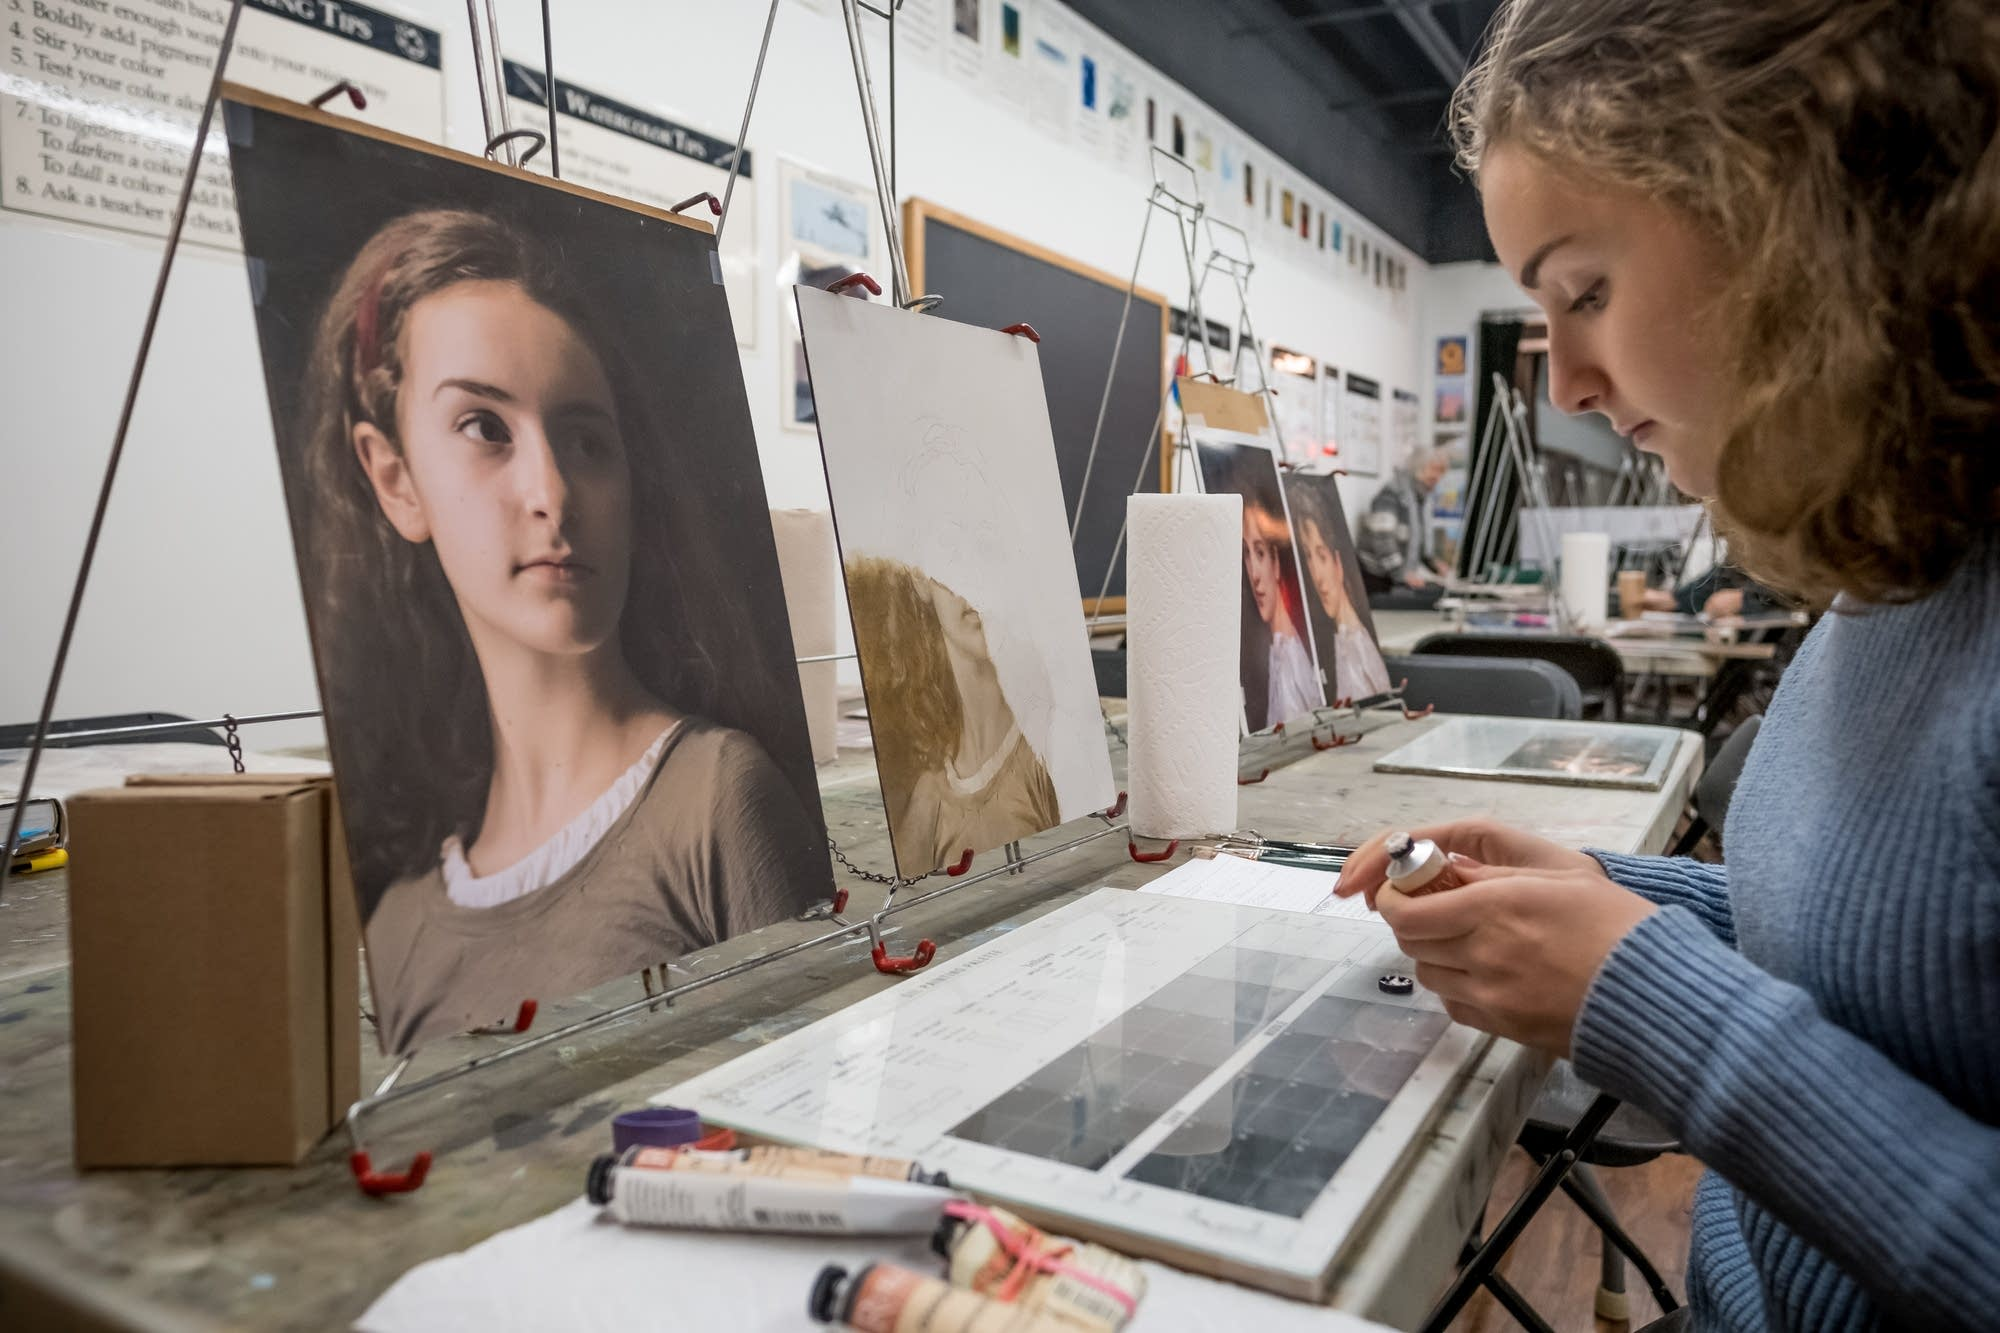 Fina Mooney, 14, of Minneapolis, sets up her supplies to paint.